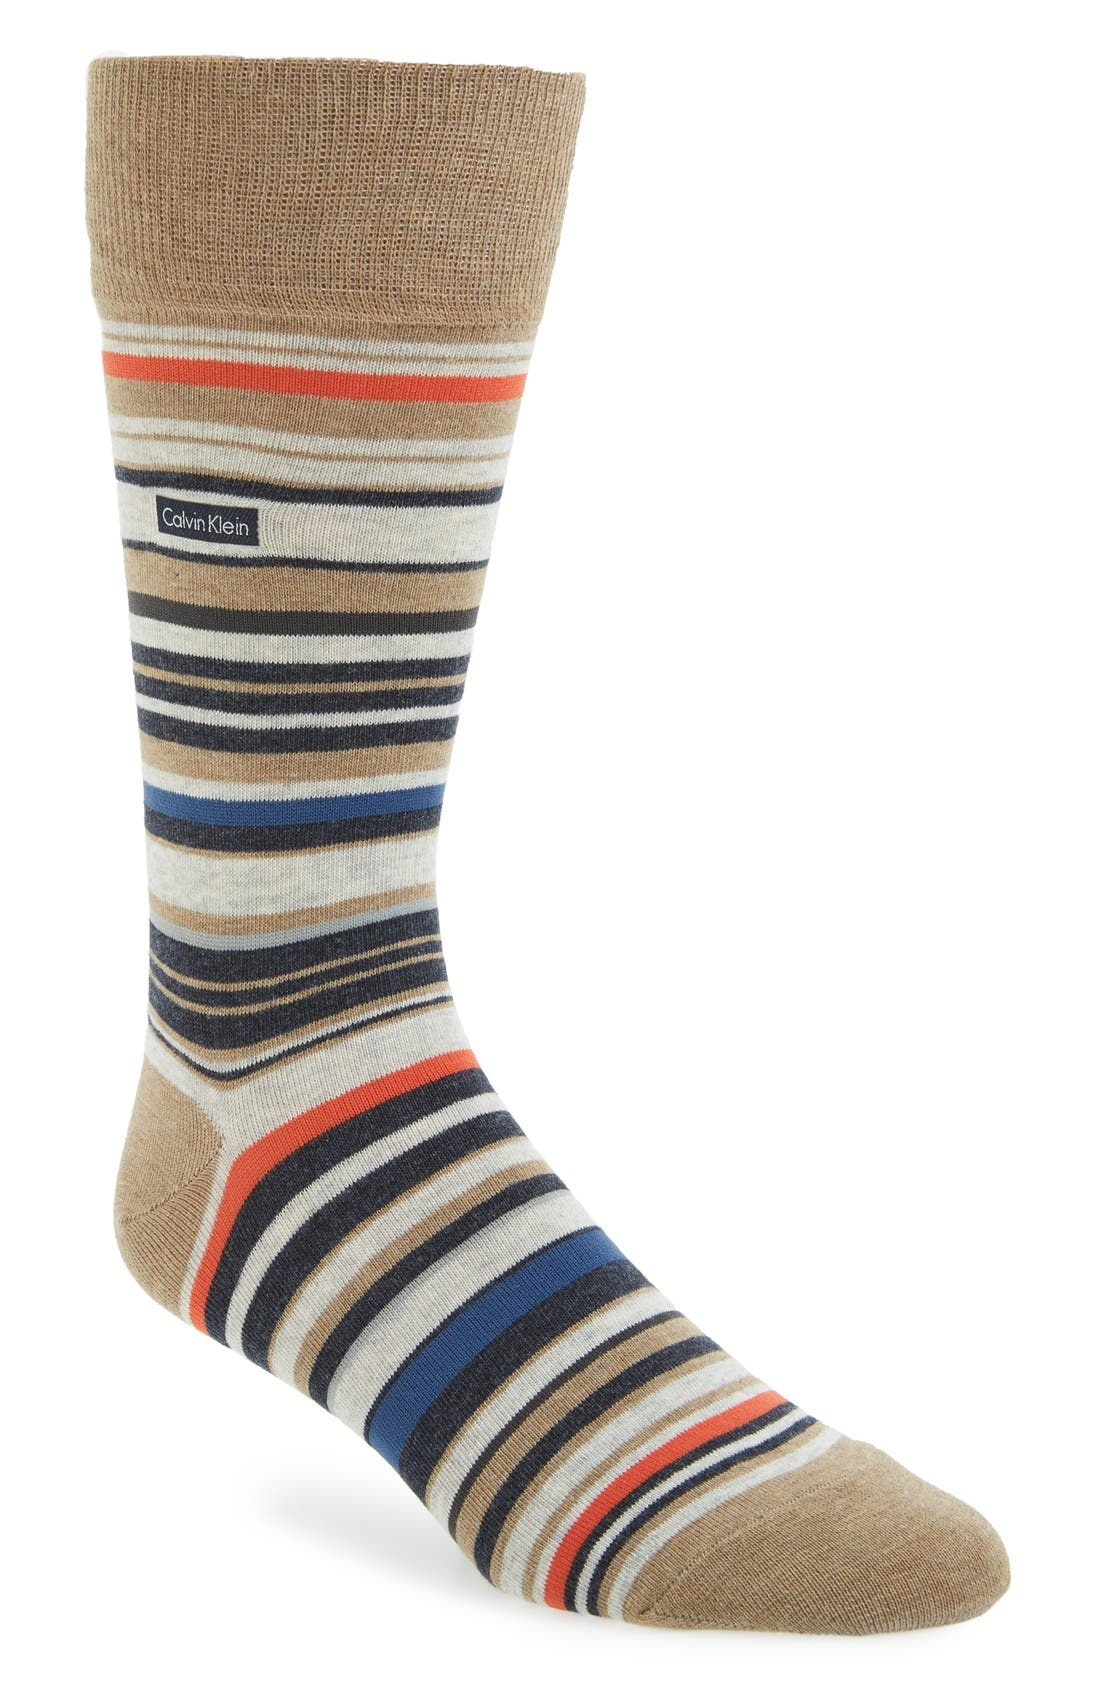 Alternate Image 1 Selected - Calvin Klein Multistripe Emblem Socks